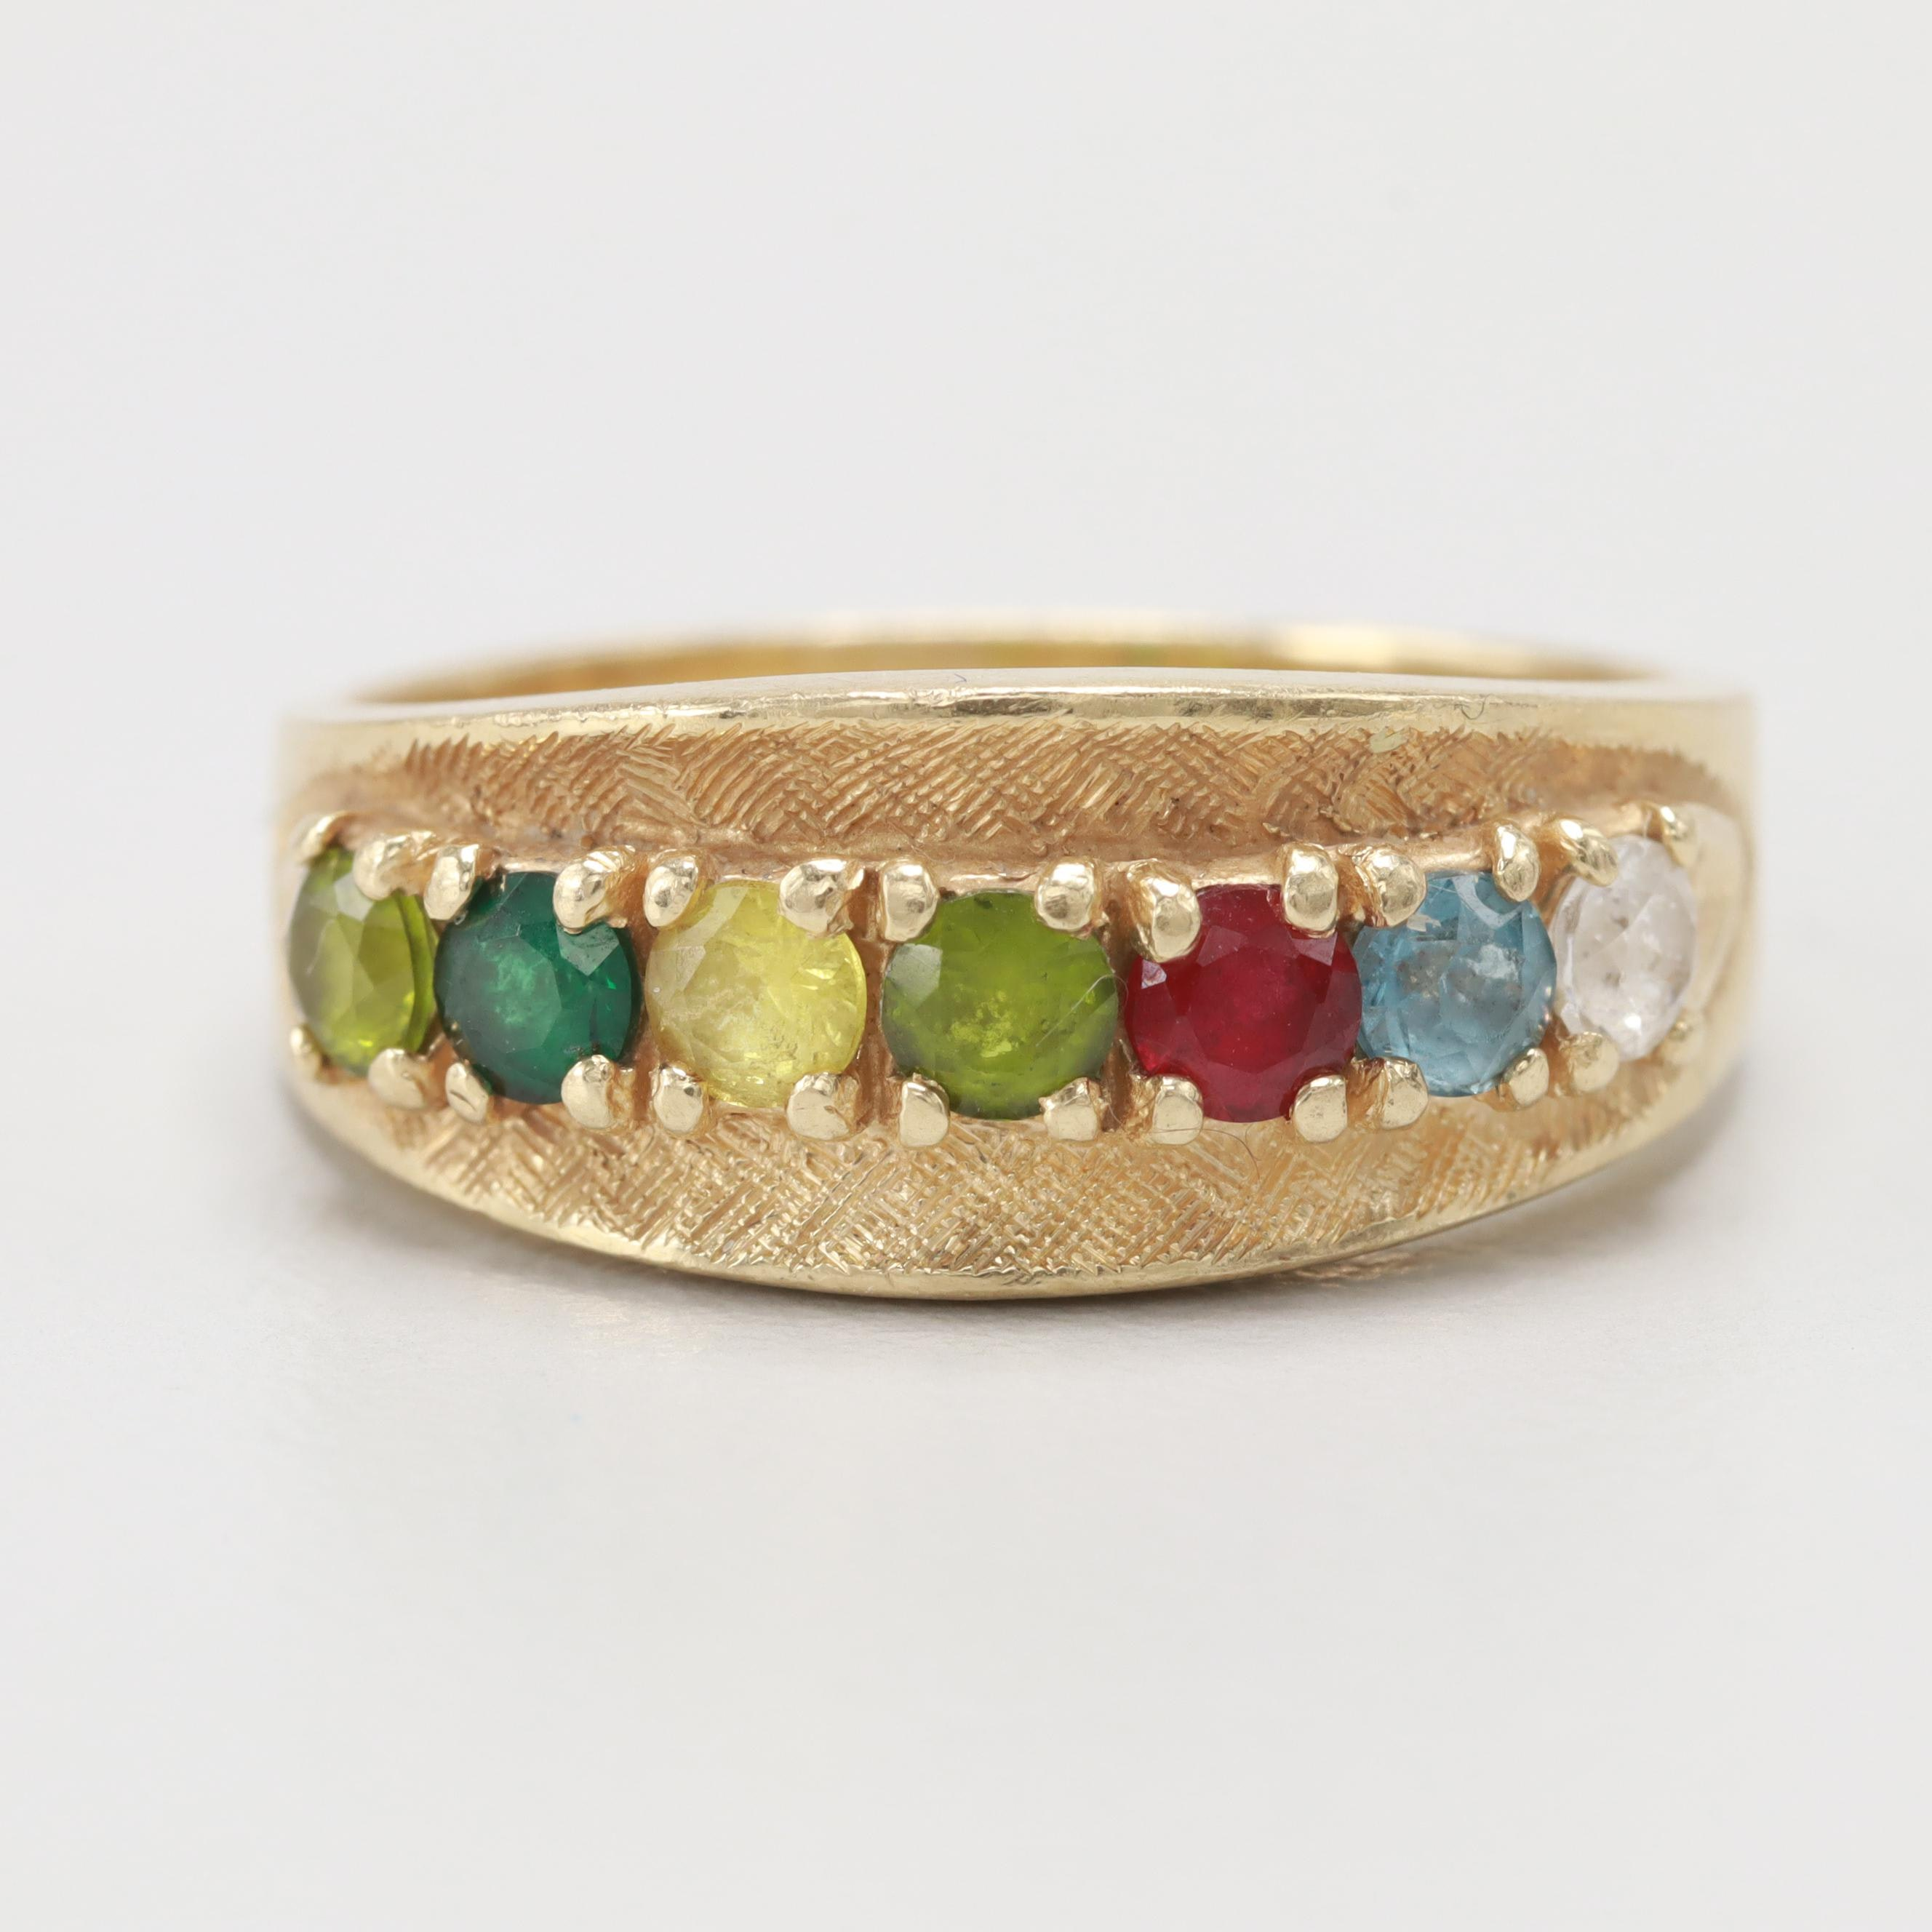 14K Yellow Gold Peridot, Synthetic Spinel and Synthetic Ruby Ring